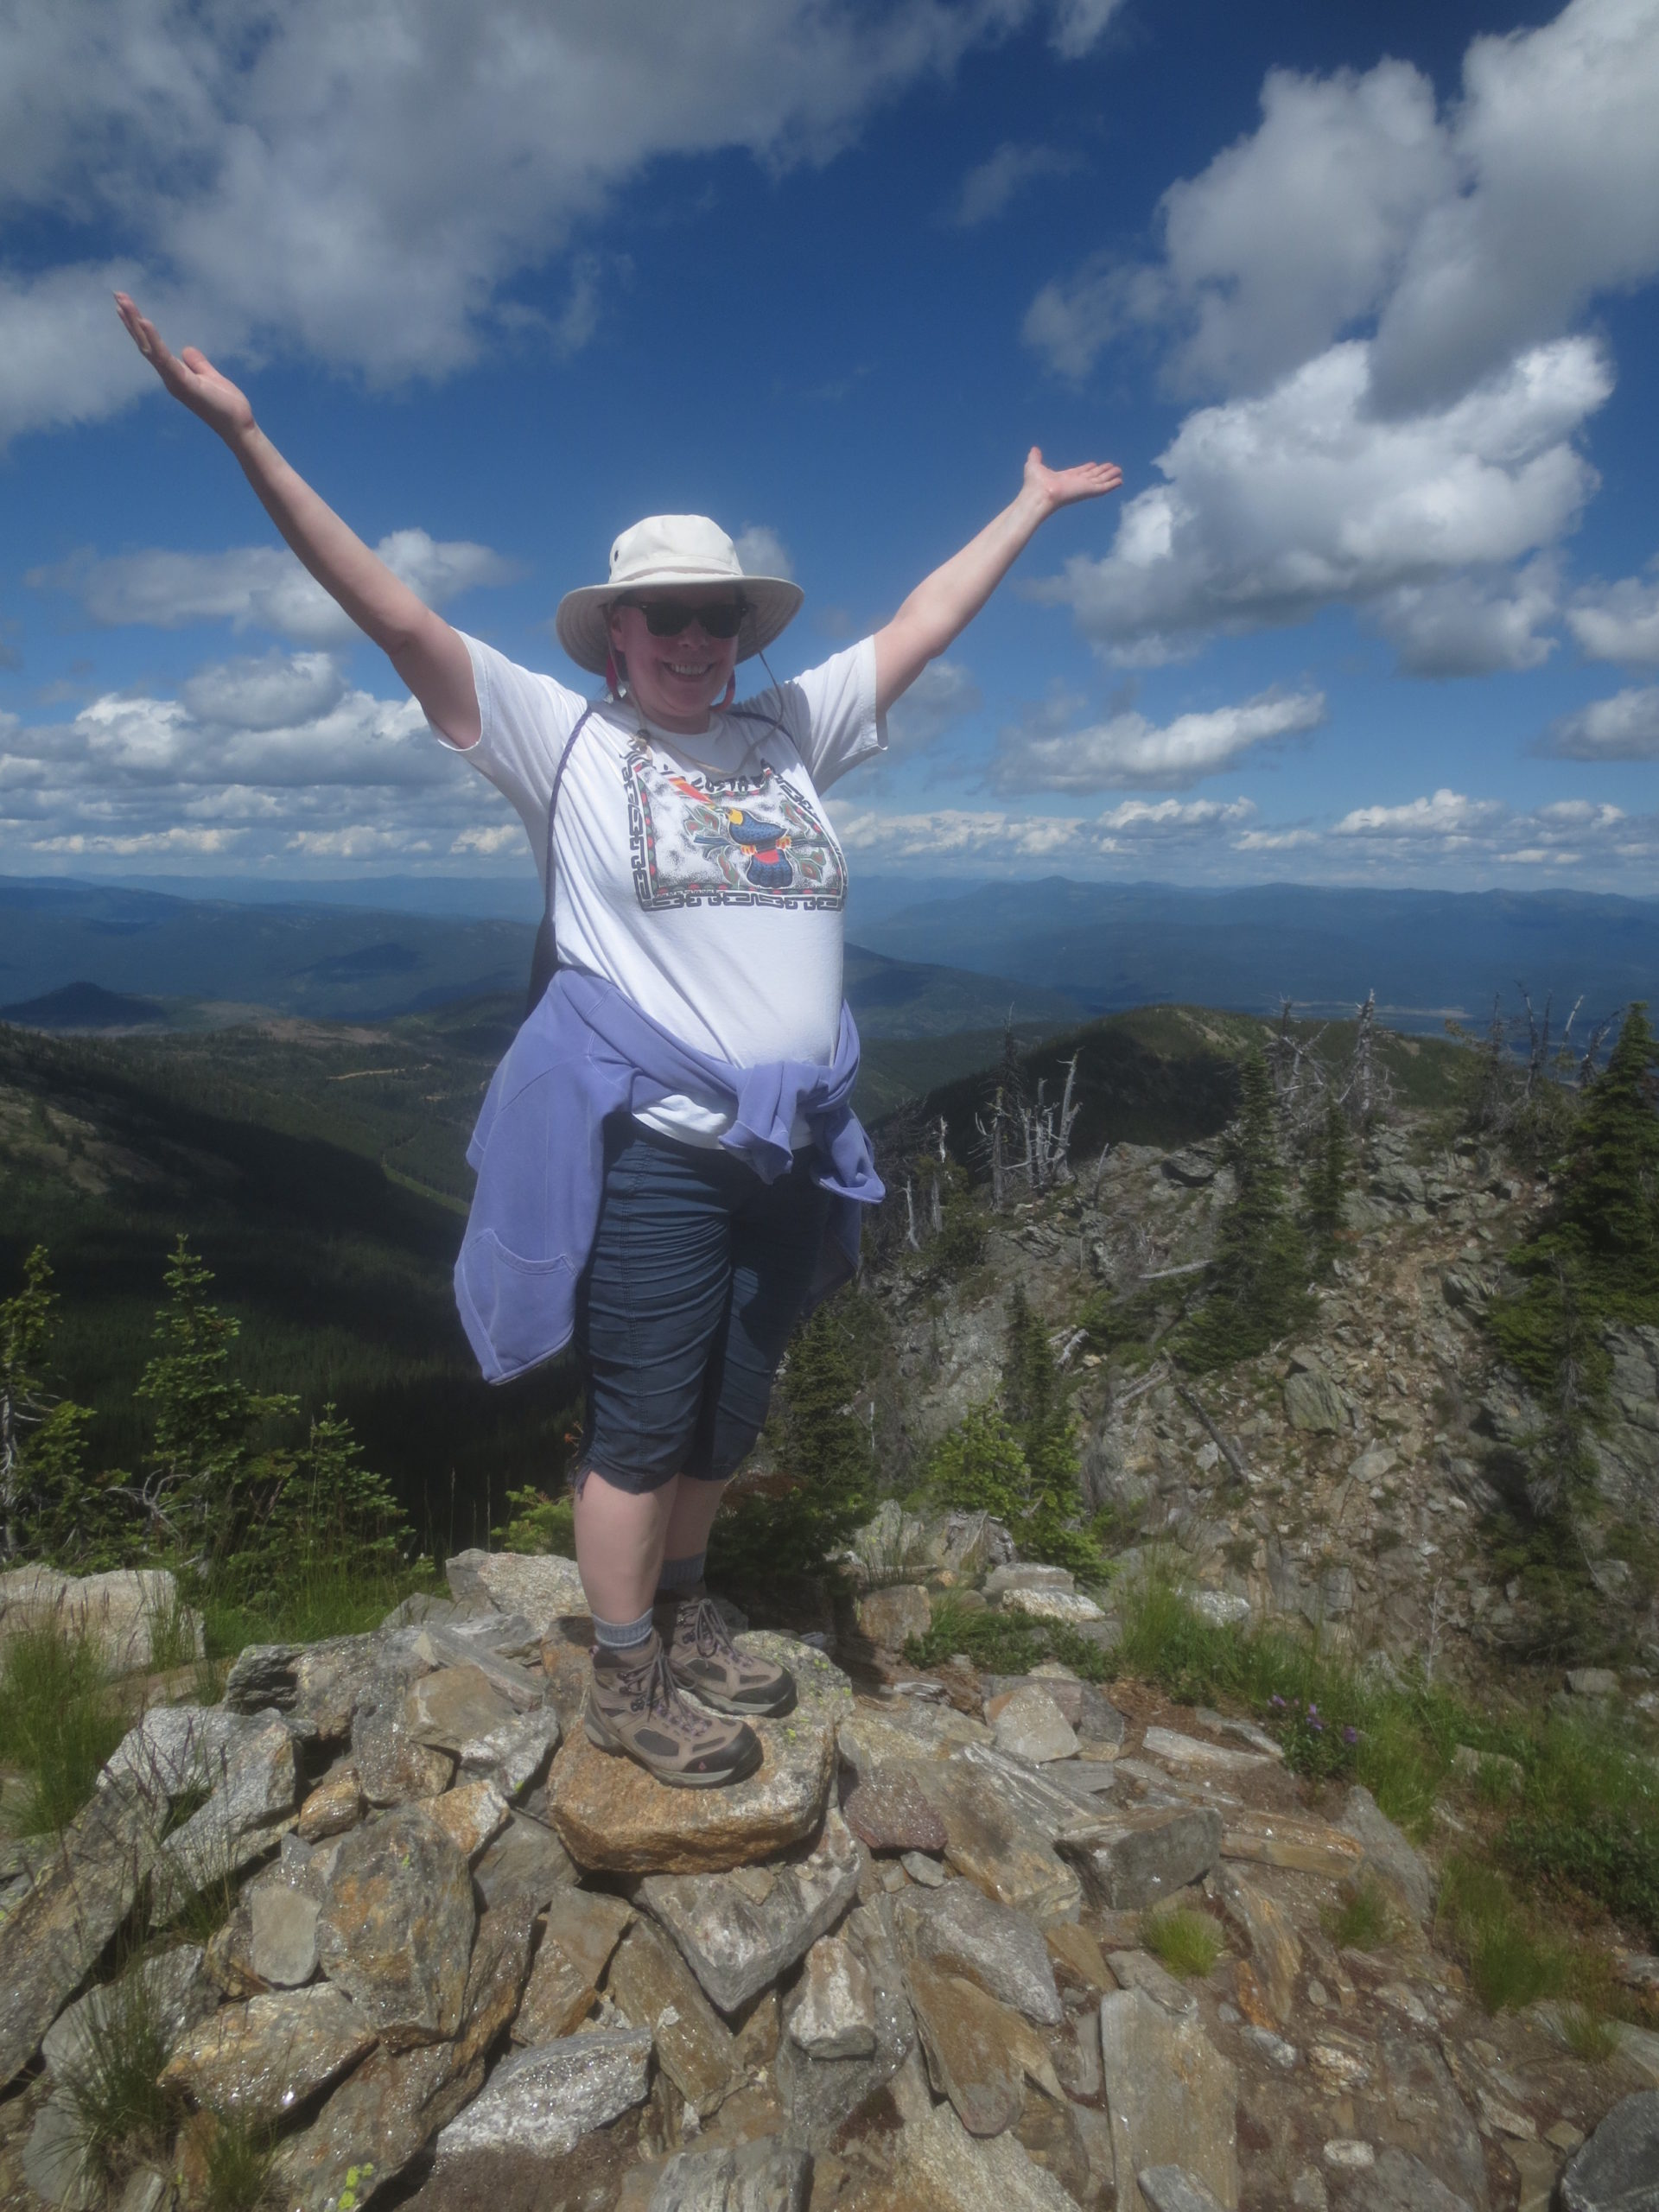 woman with arms raised in celebration at the top of a mountain